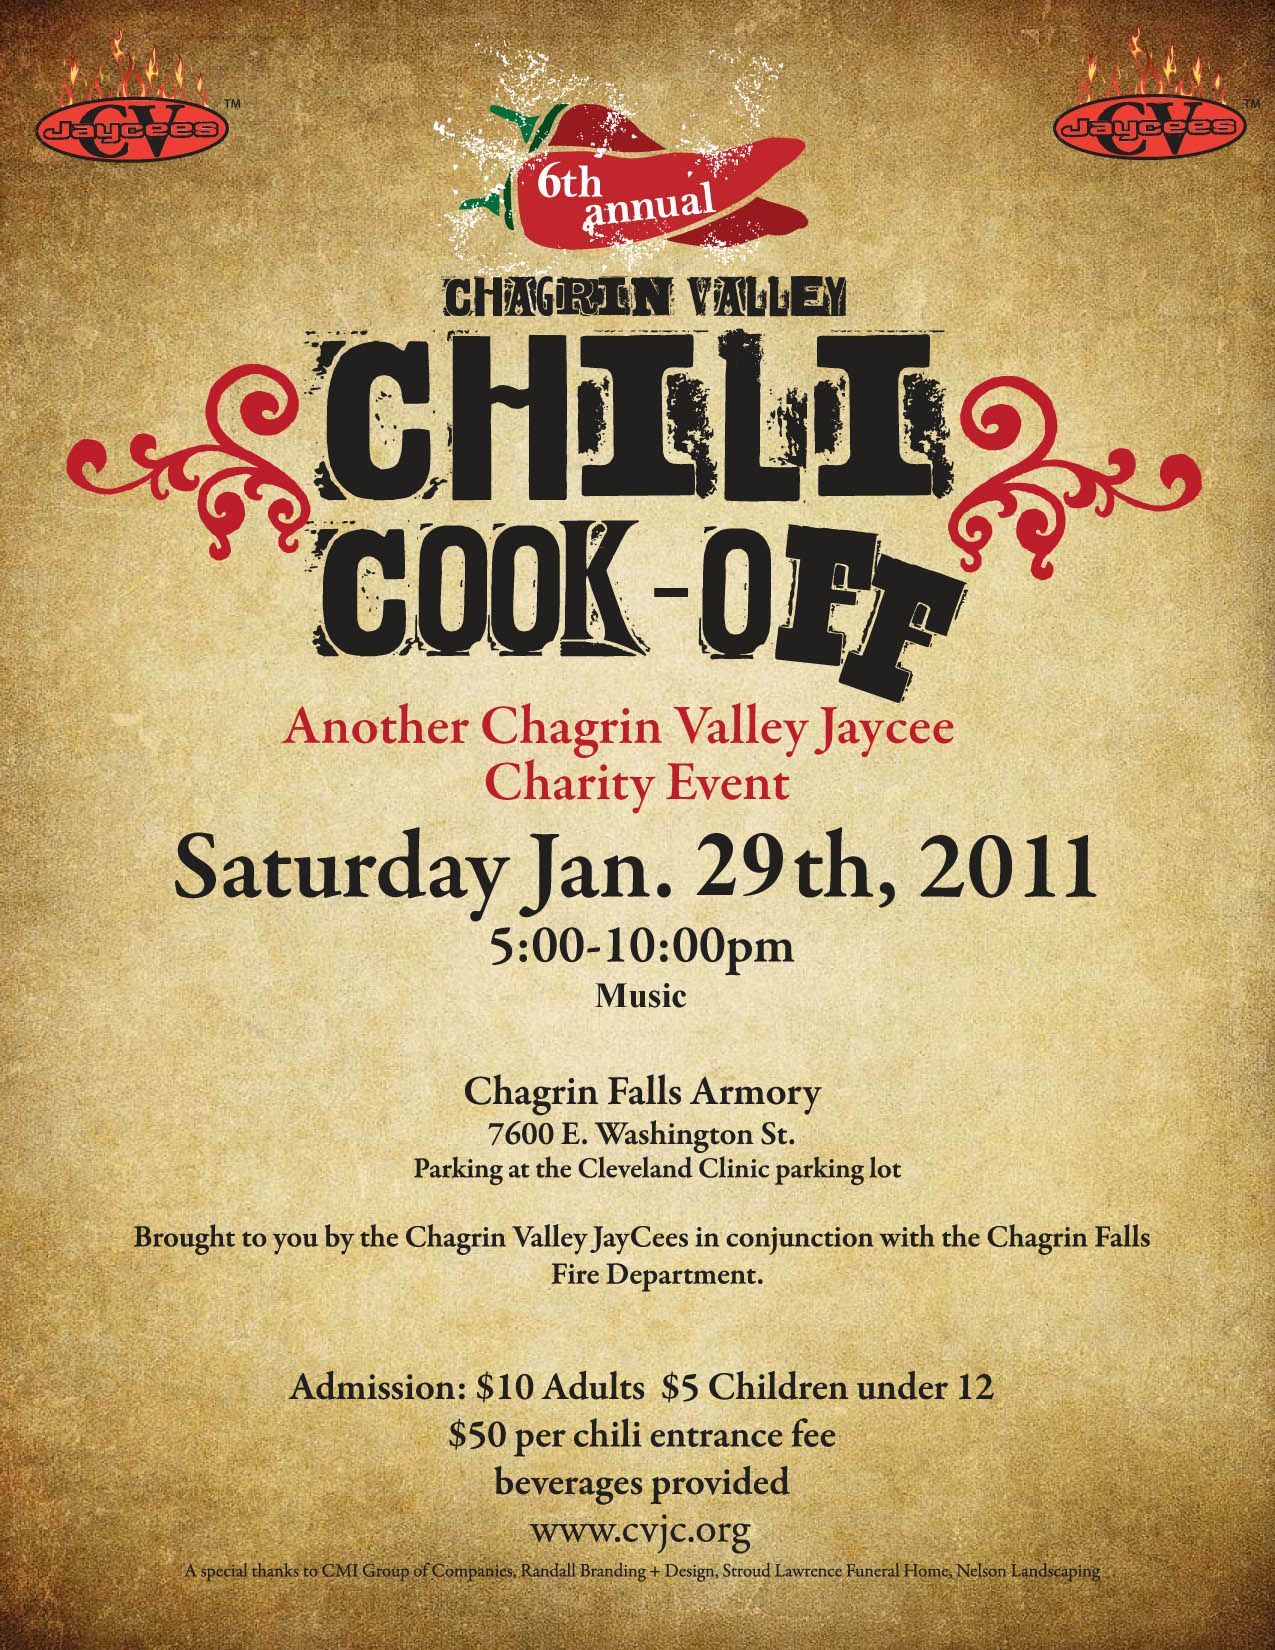 Flyer Ideas Chili Cook Off Flyer Template Free Printable Wow Image